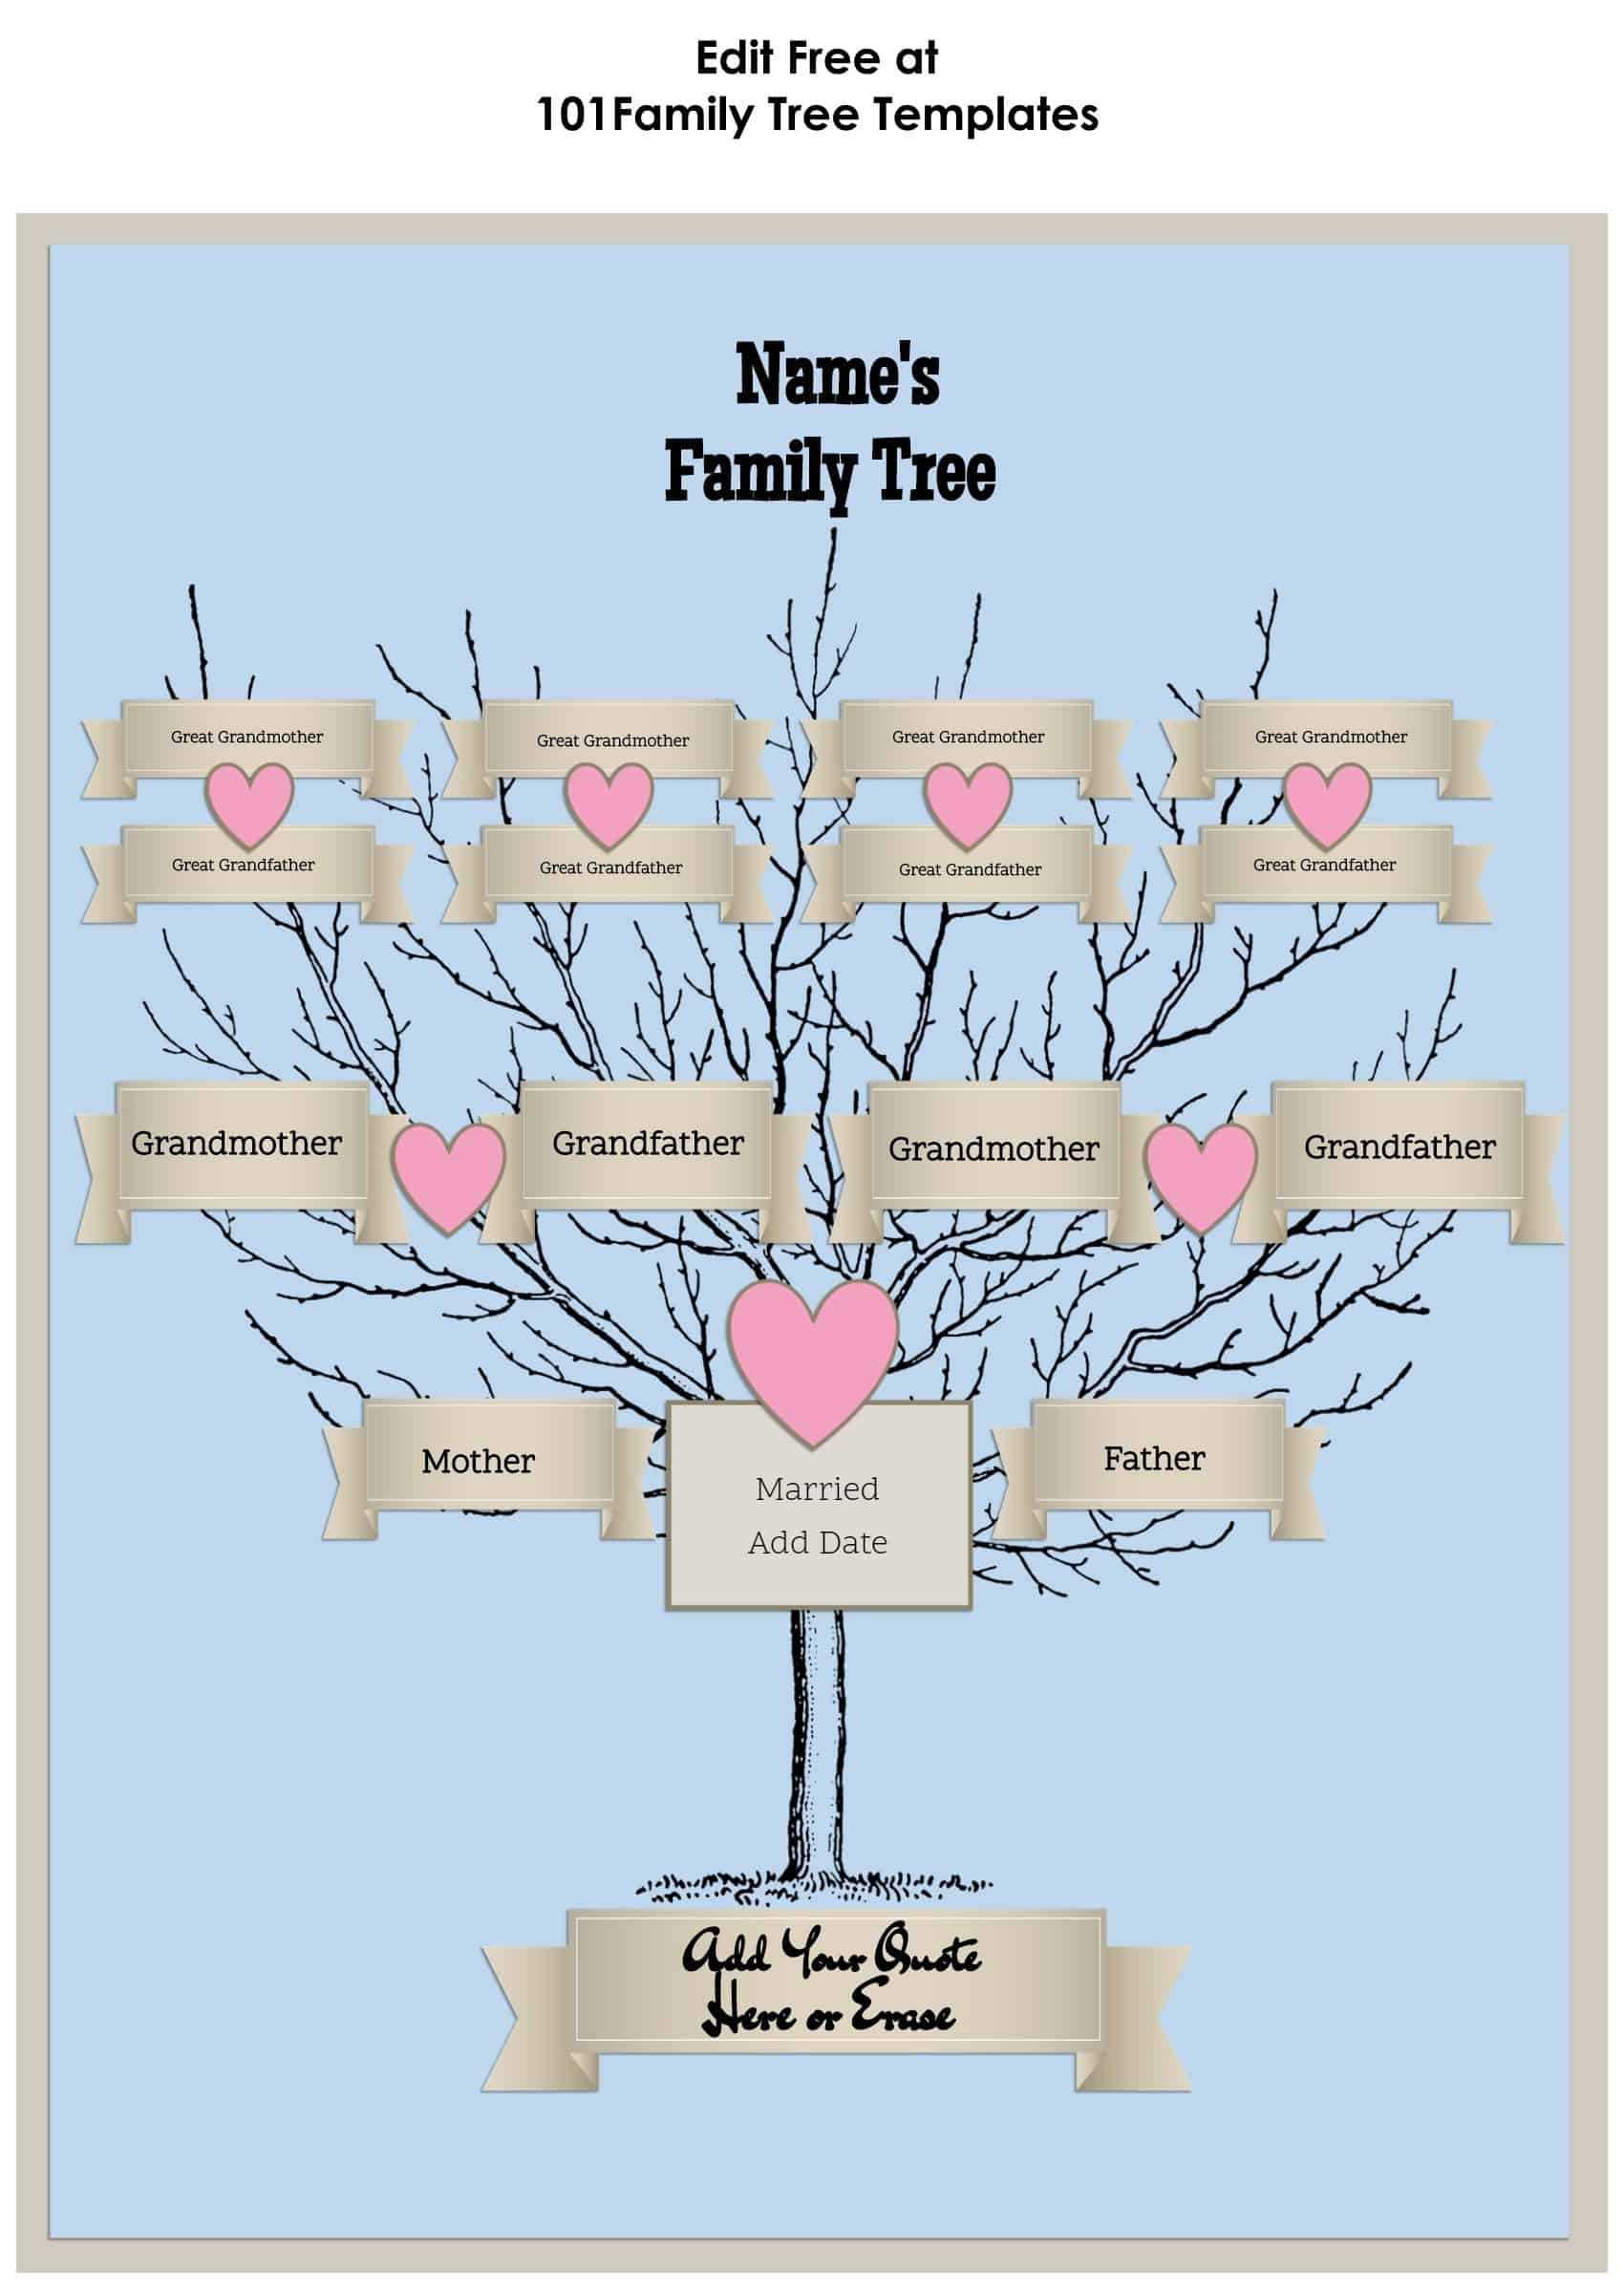 3 Generation Family Tree Generator | All Templates Are Free Within Blank Family Tree Template 3 Generations